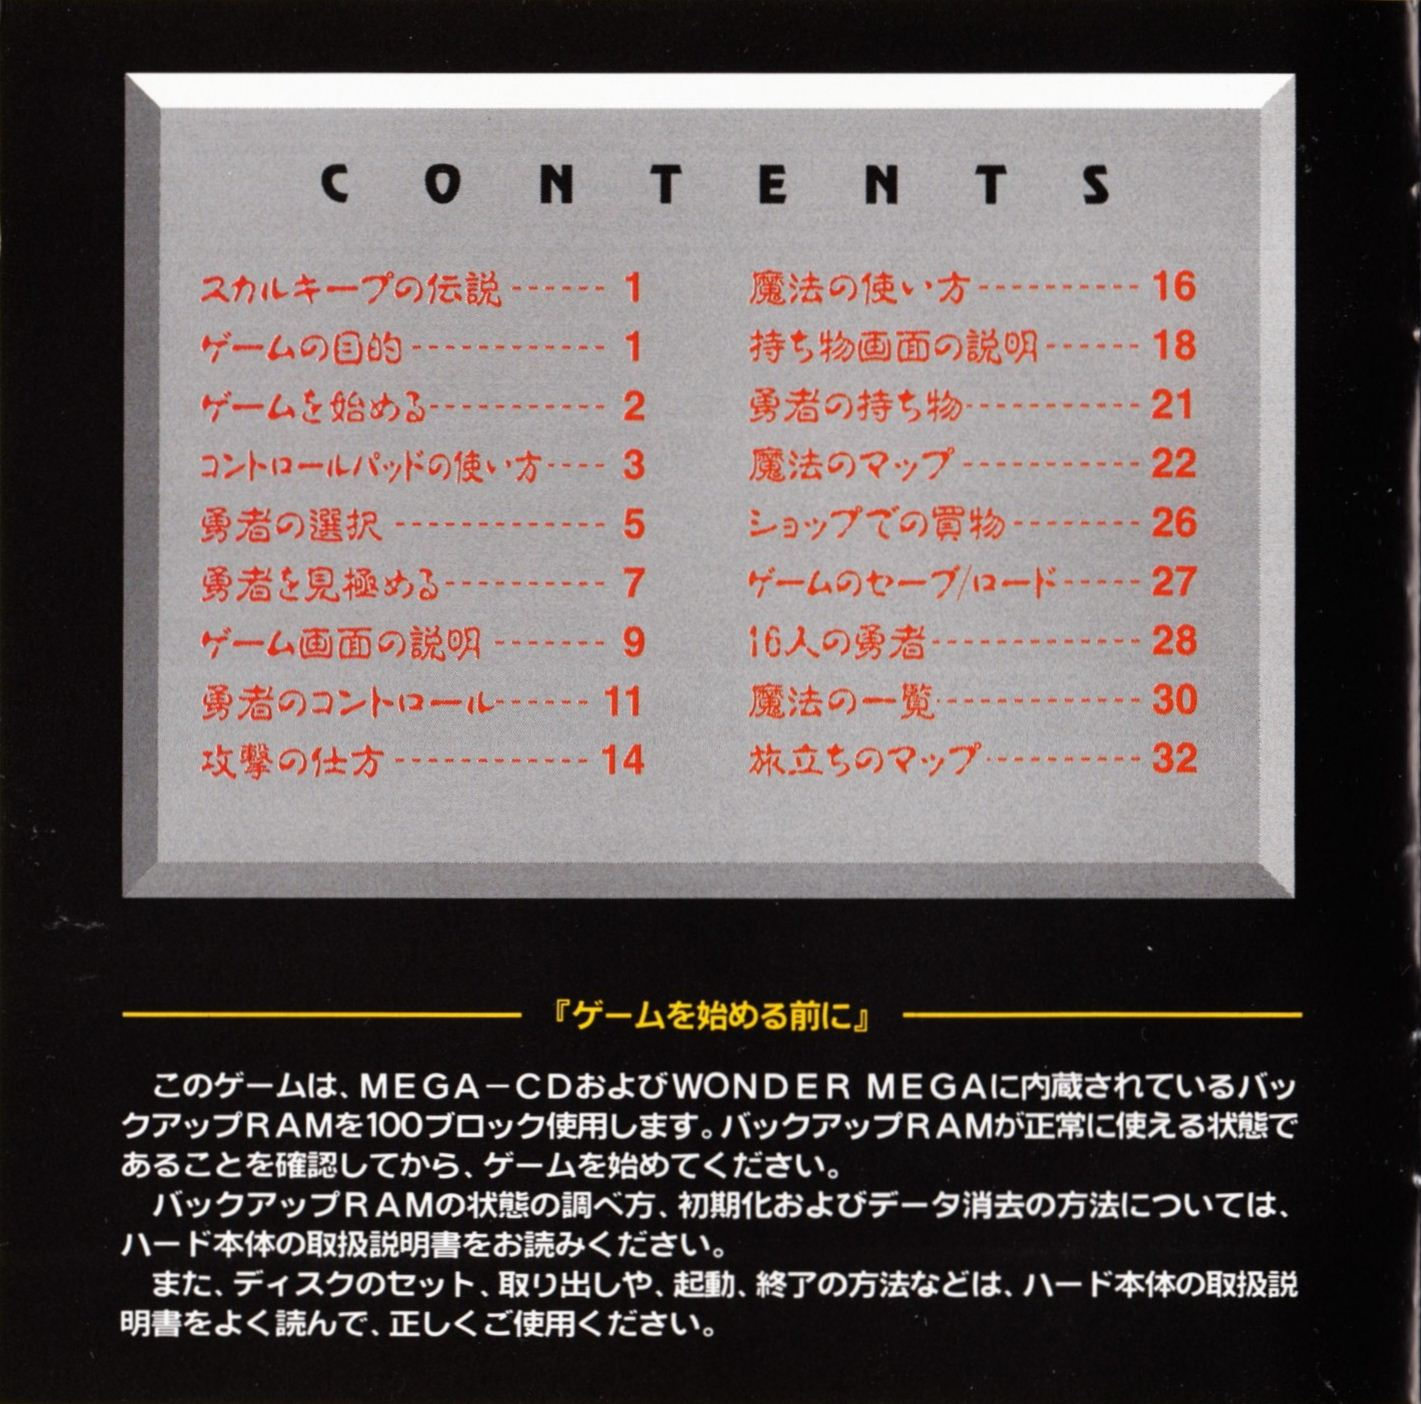 Game - Dungeon Master II - JP - Mega CD - Booklet - Page 002 - Scan